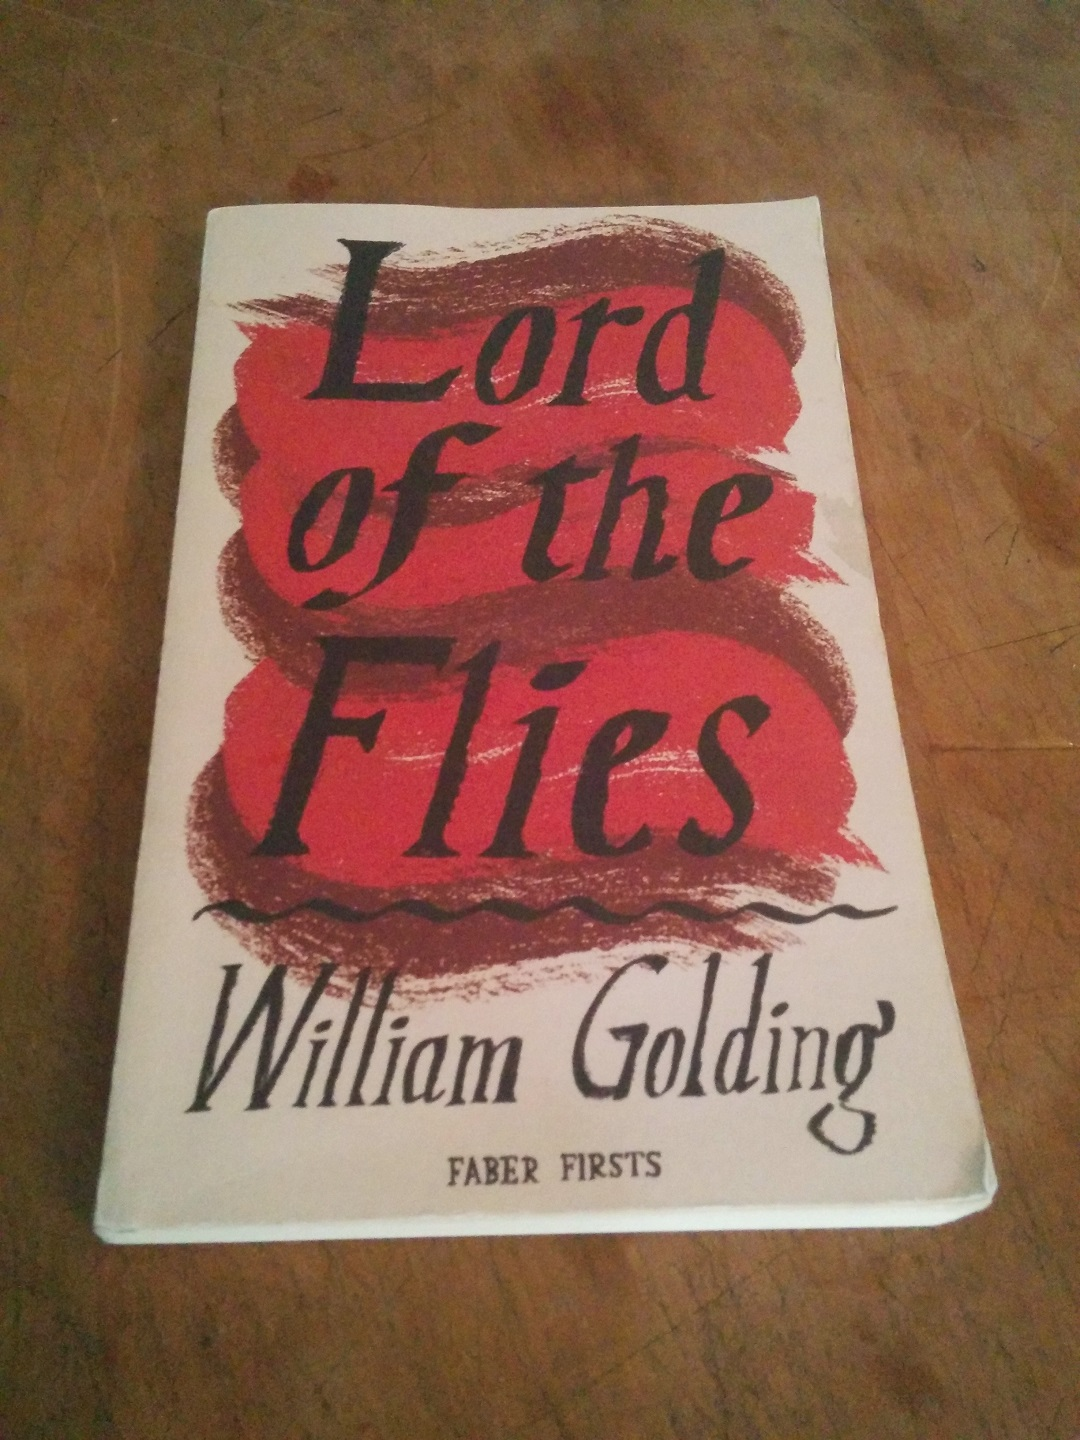 a review of william goldings lord of the flies In this paper i chose to analyze the book lord of the flies written by william golding  literature review  lord of the flies by william golding philosophy essay.